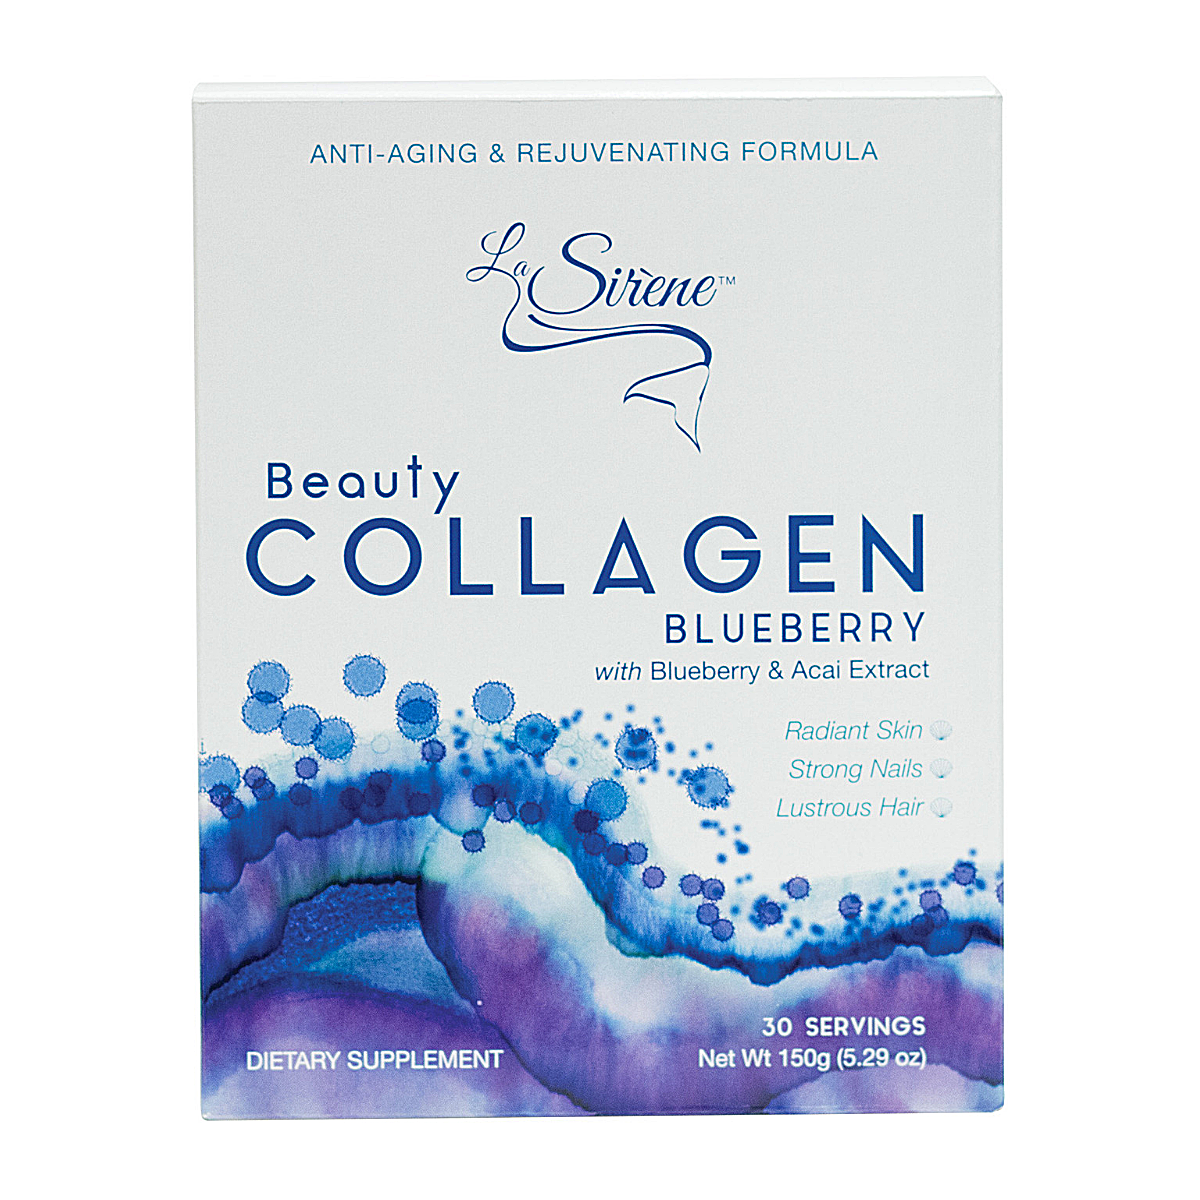 Blueberry Beauty Collagen - La Sirène